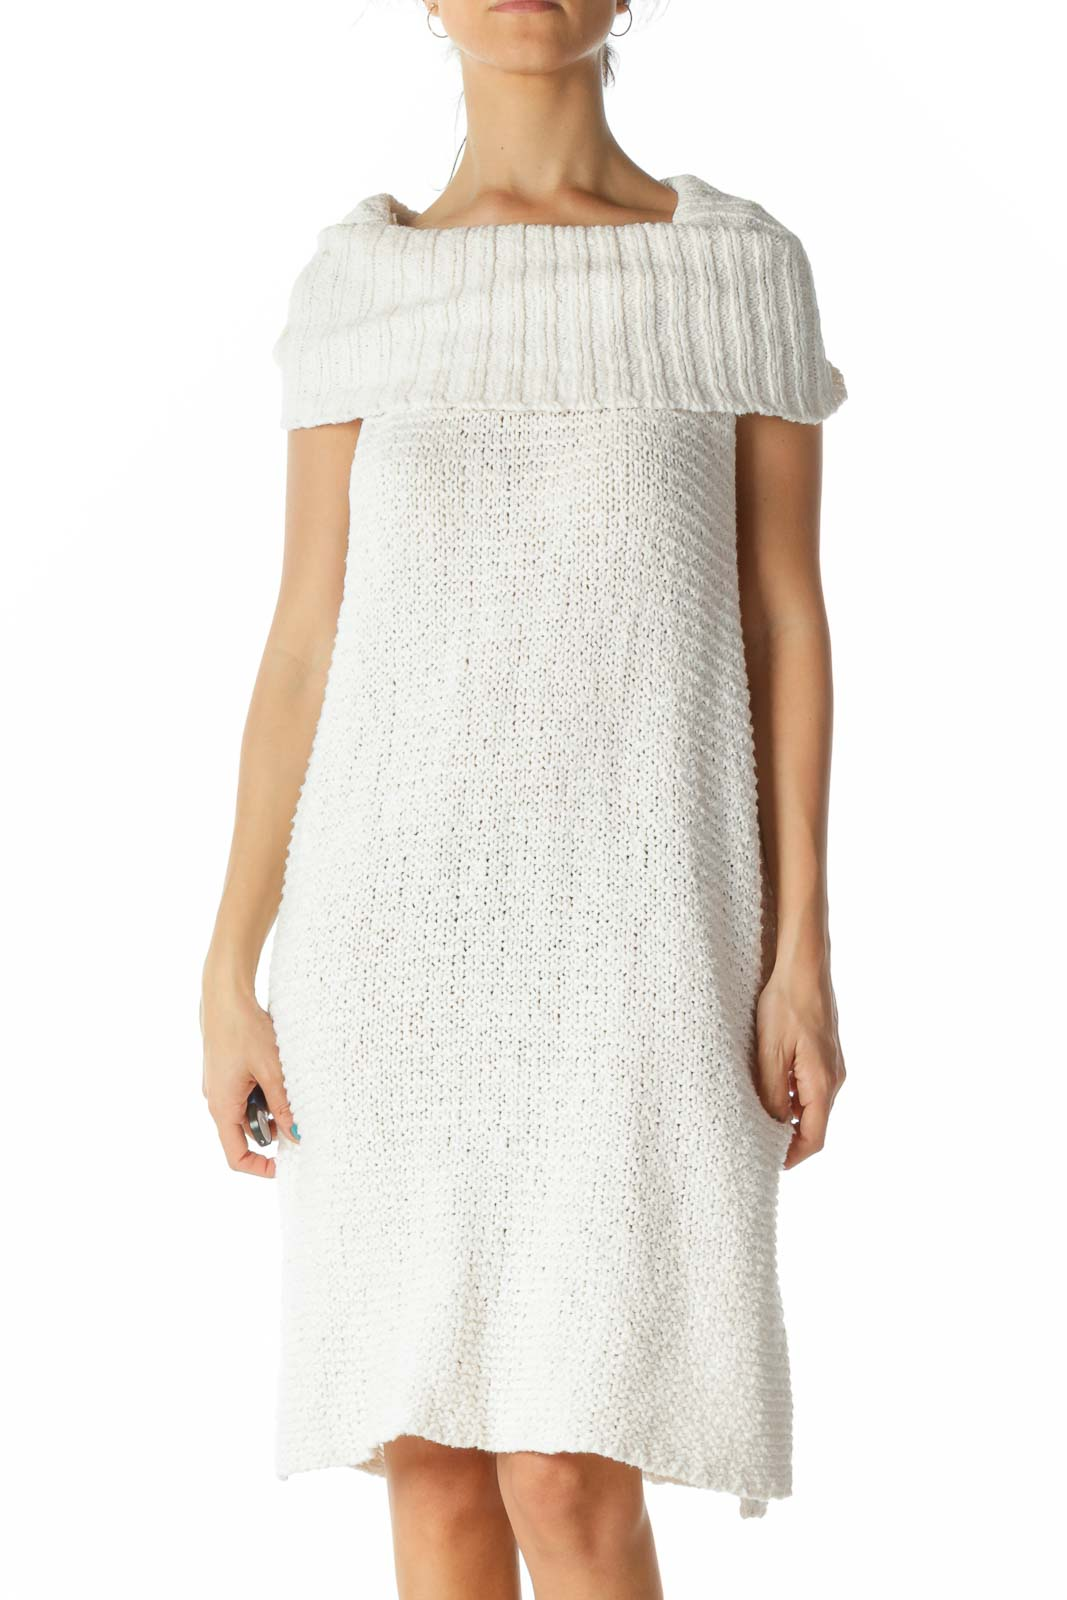 Cream Turtle Sleeveless Slitted Knit Dress